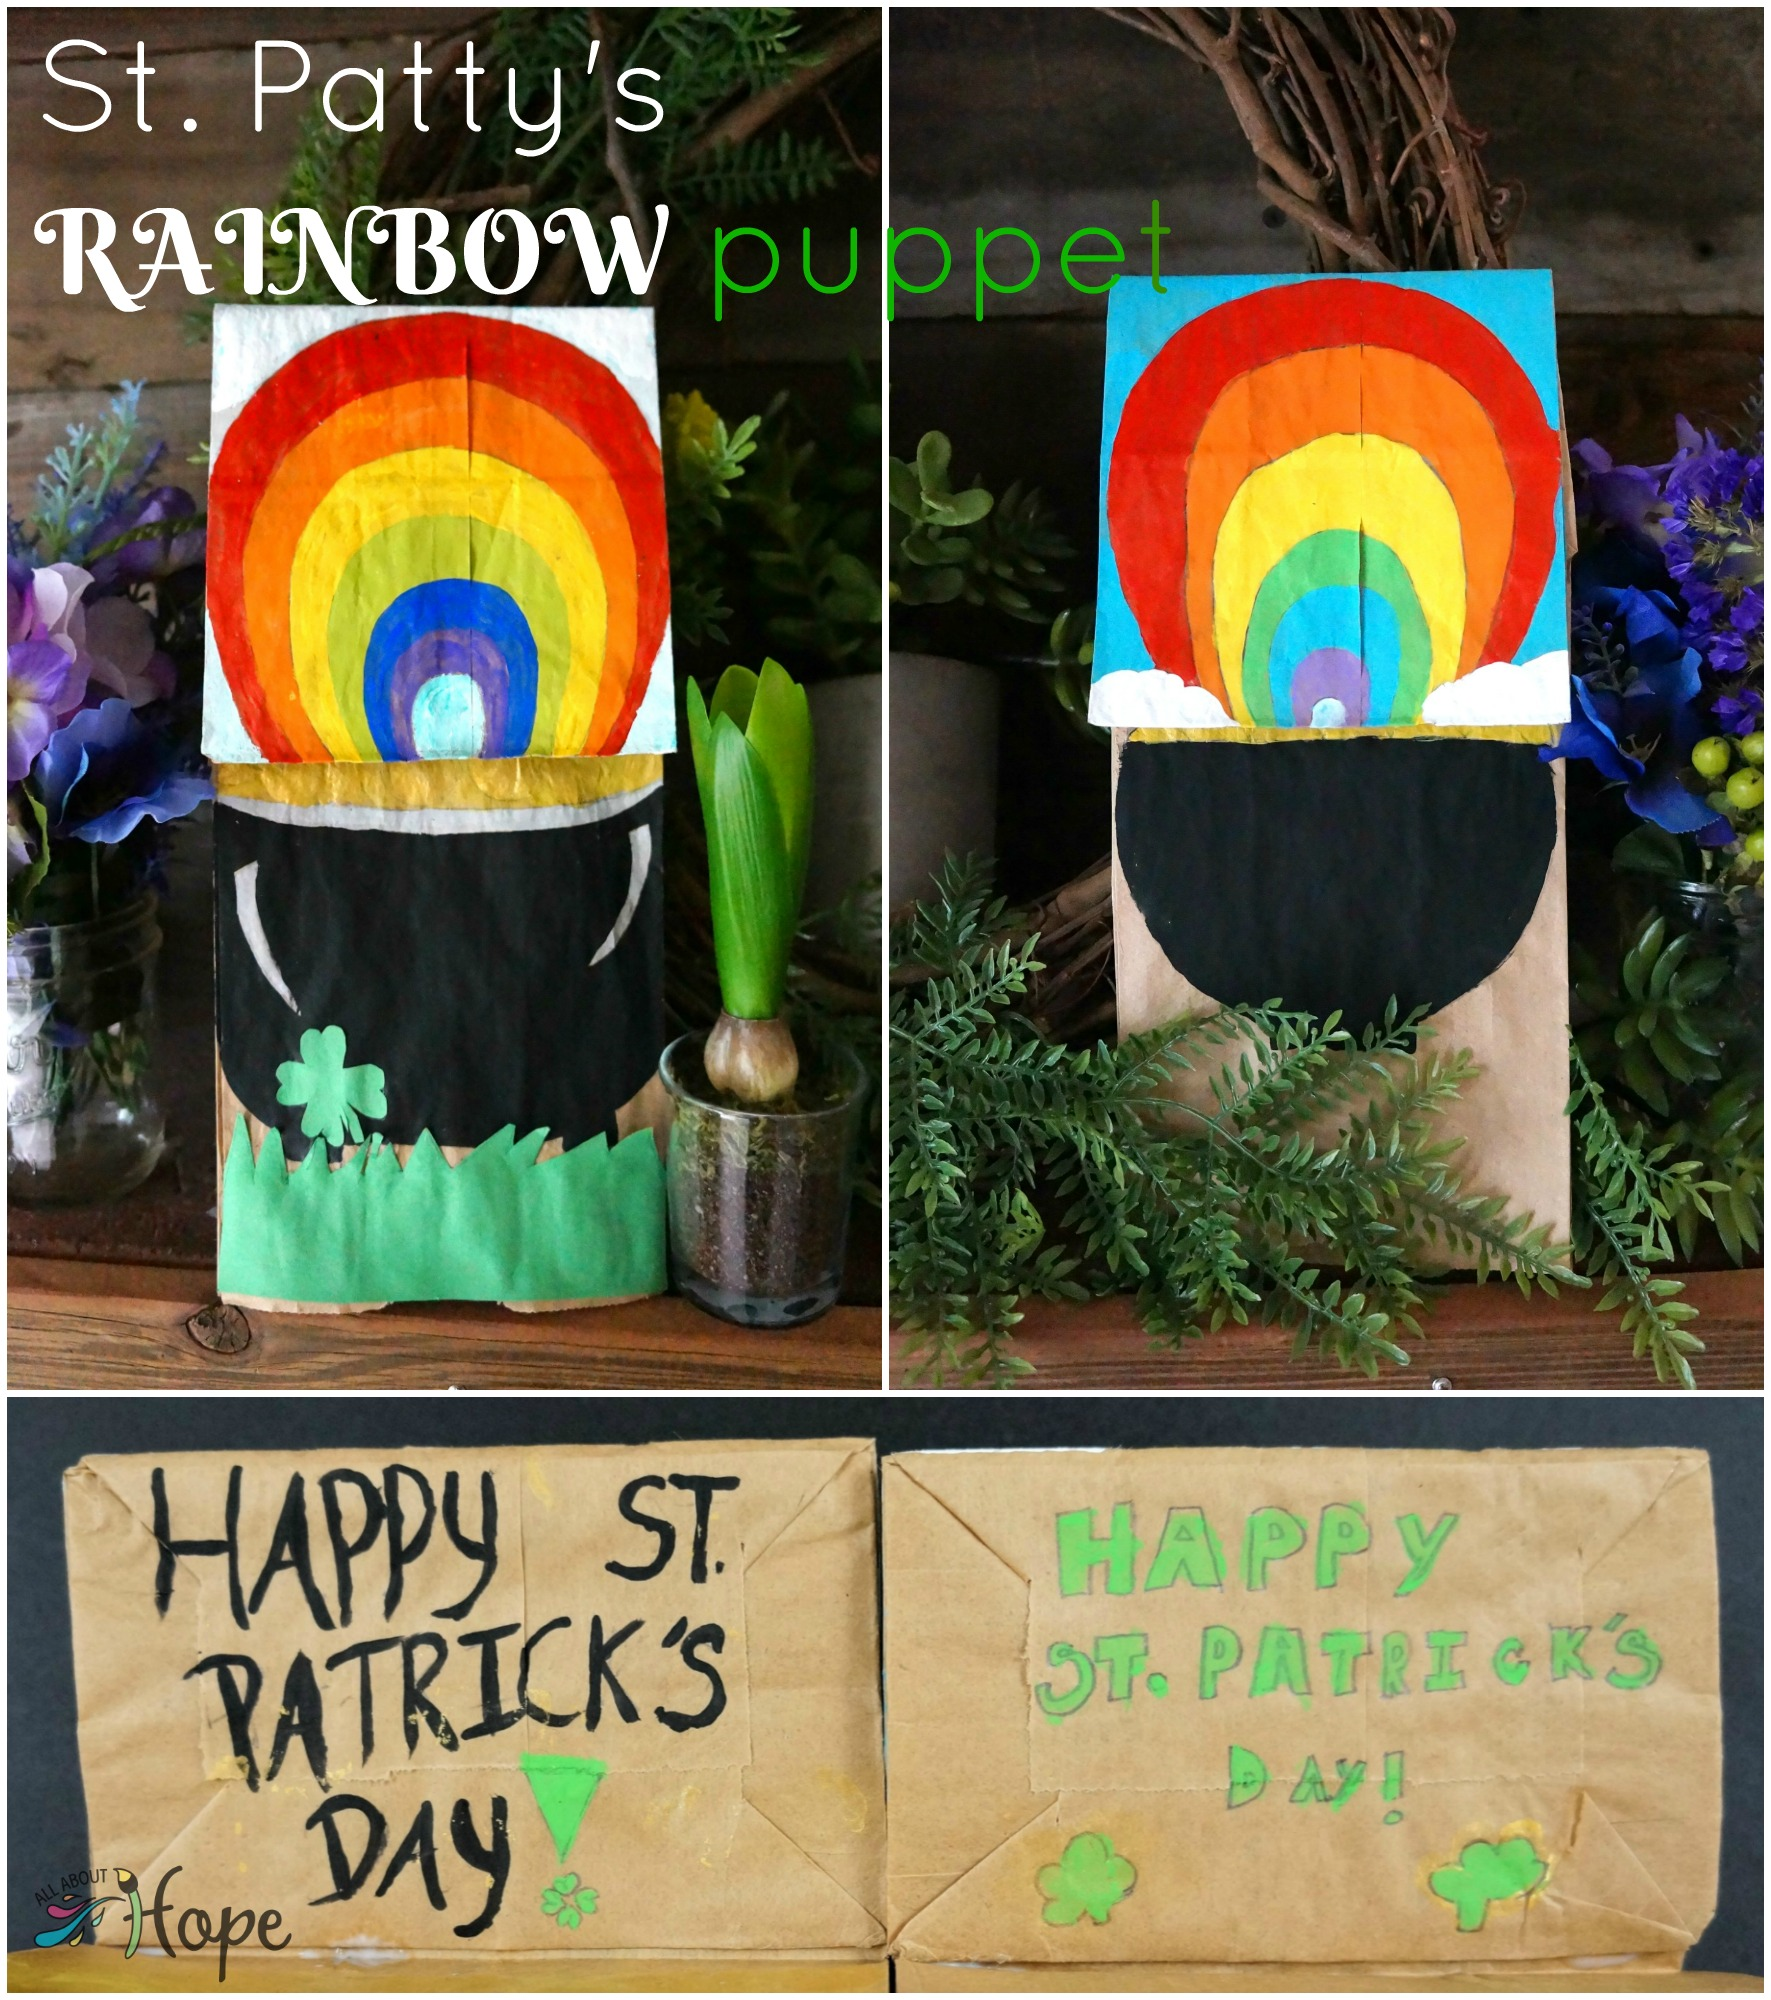 DIY St. Patty's Rainbow puppet, DIY St. Patty's rainbow craft, Paper bag puppet, lunch bag puppet, DIY St. Patrick's puppet, DIY Rainbow craft, DIY Pot of gold craft, DIY pot of gold,  DIY paper puppet, DIY St. Patty's puppet, All About Hope projects